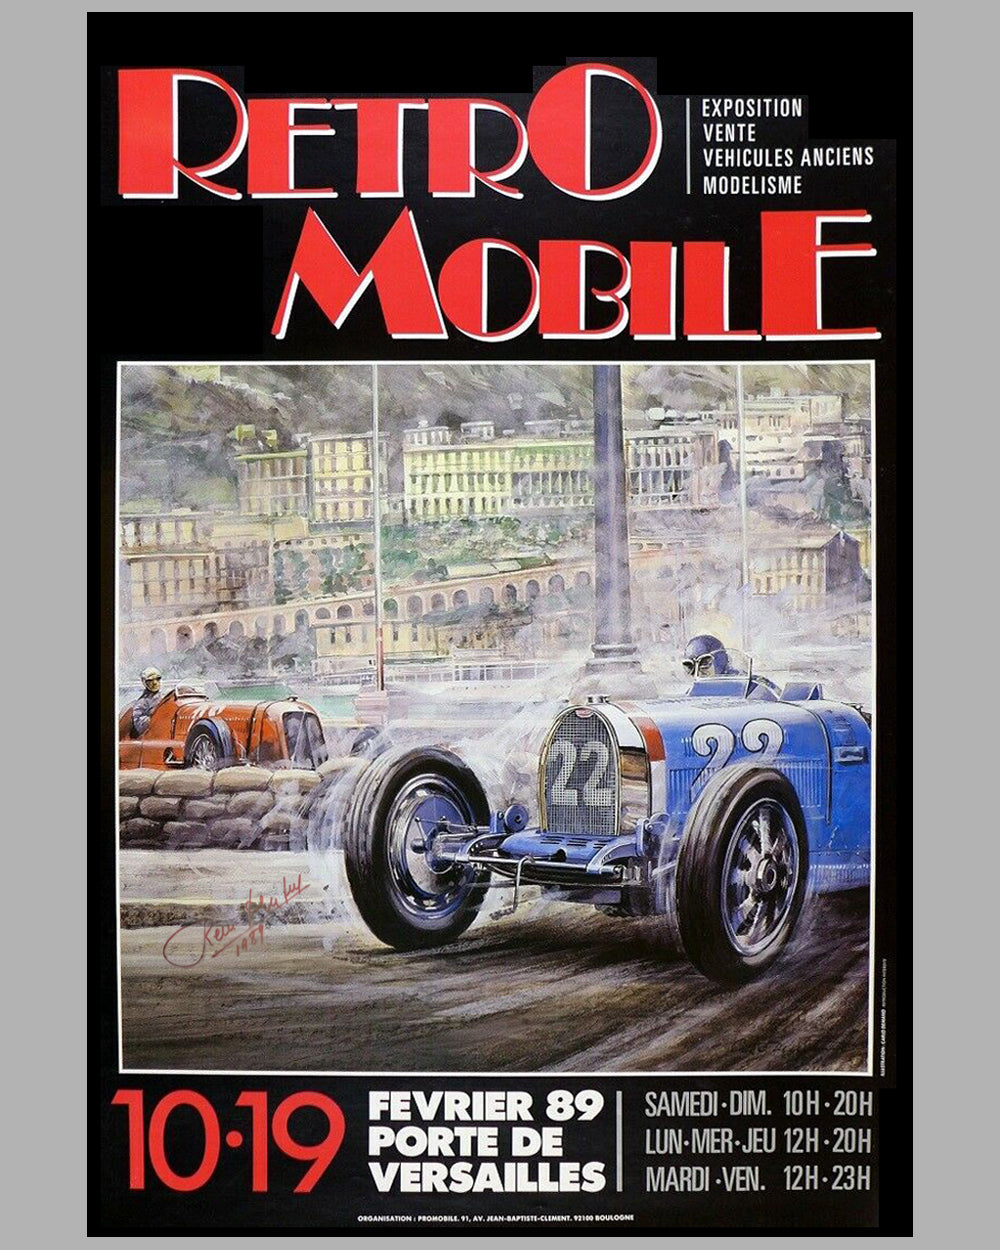 1989 Retromobile event poster by Carlo Demand, autographed by Rene Dreyfus